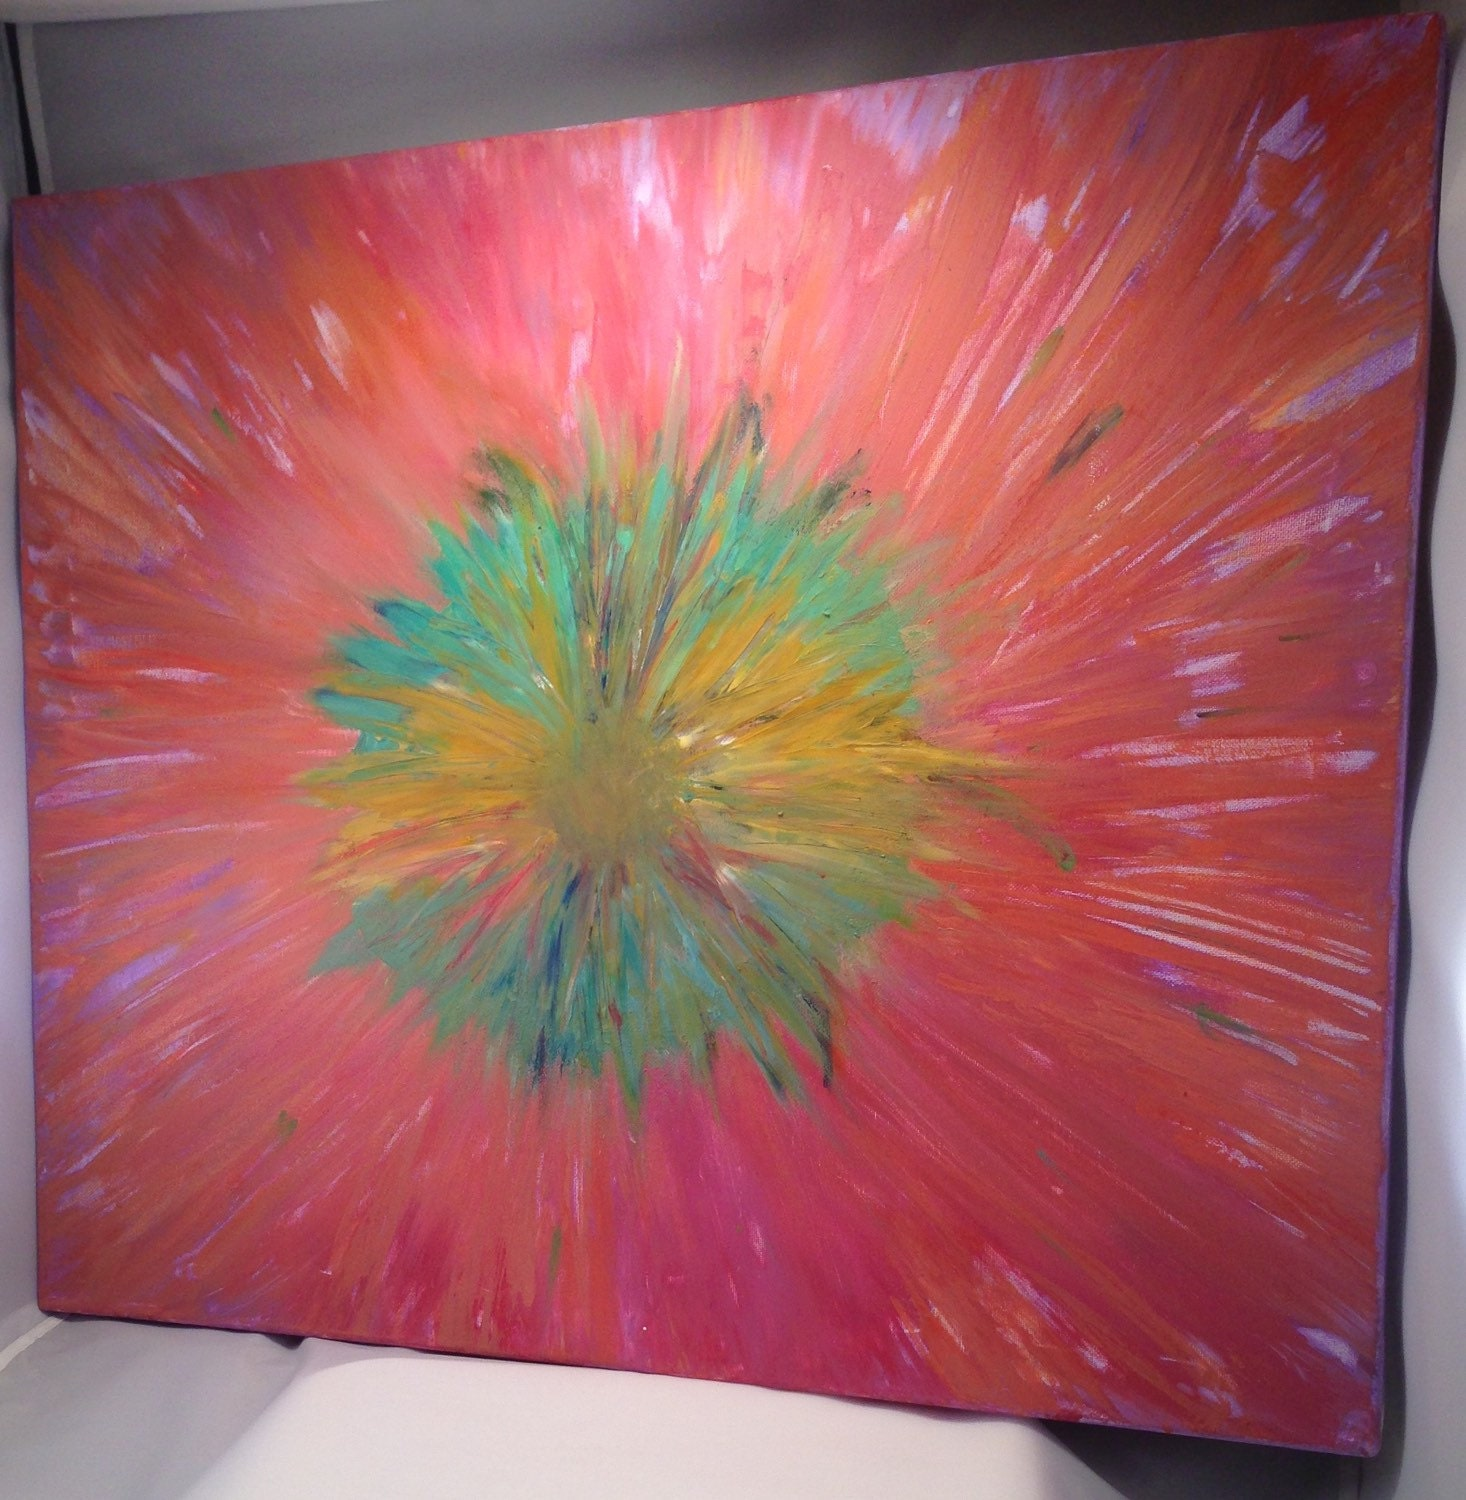 Abstract Flower Tye Dye Series No 1 24x20 Streched